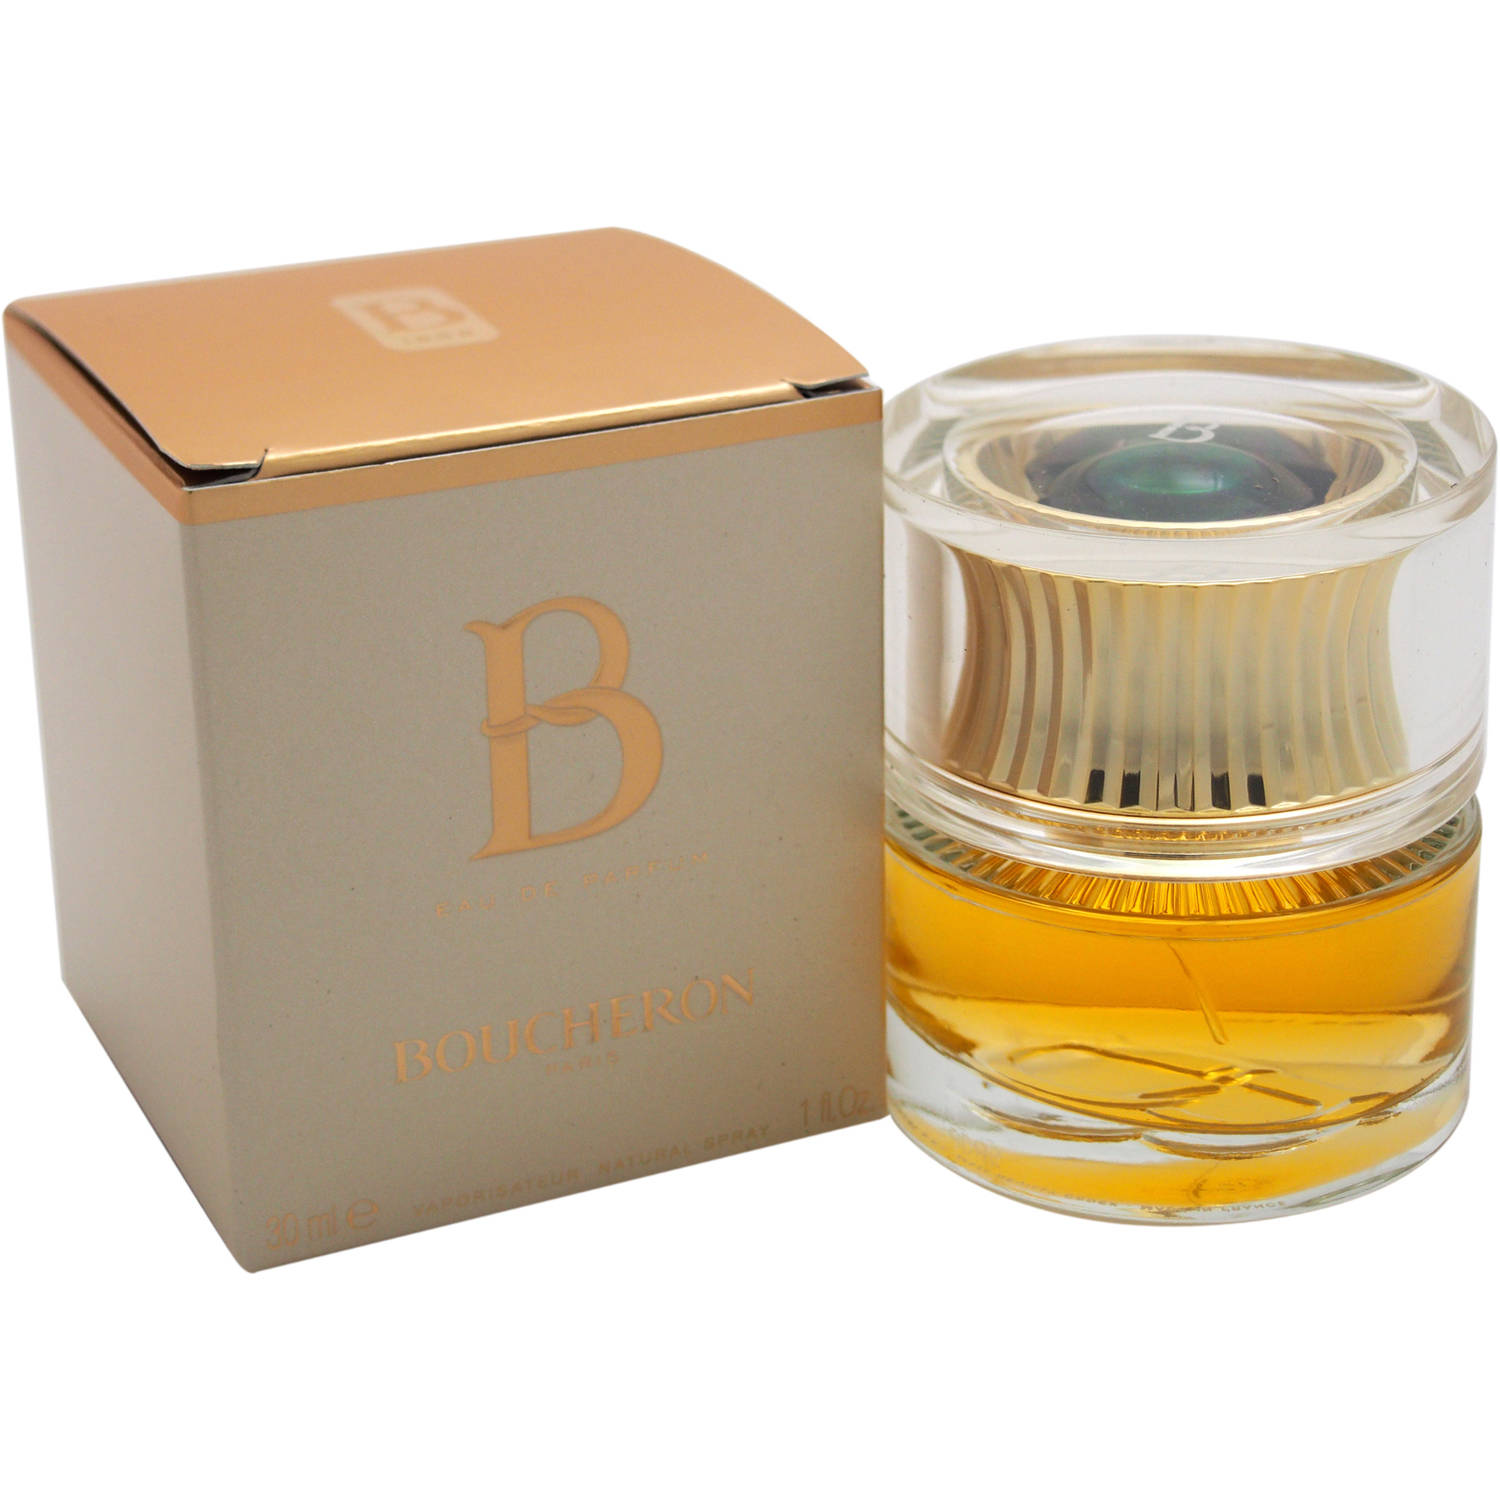 Boucheron B De Boucheron EDP Spray, 1 fl oz